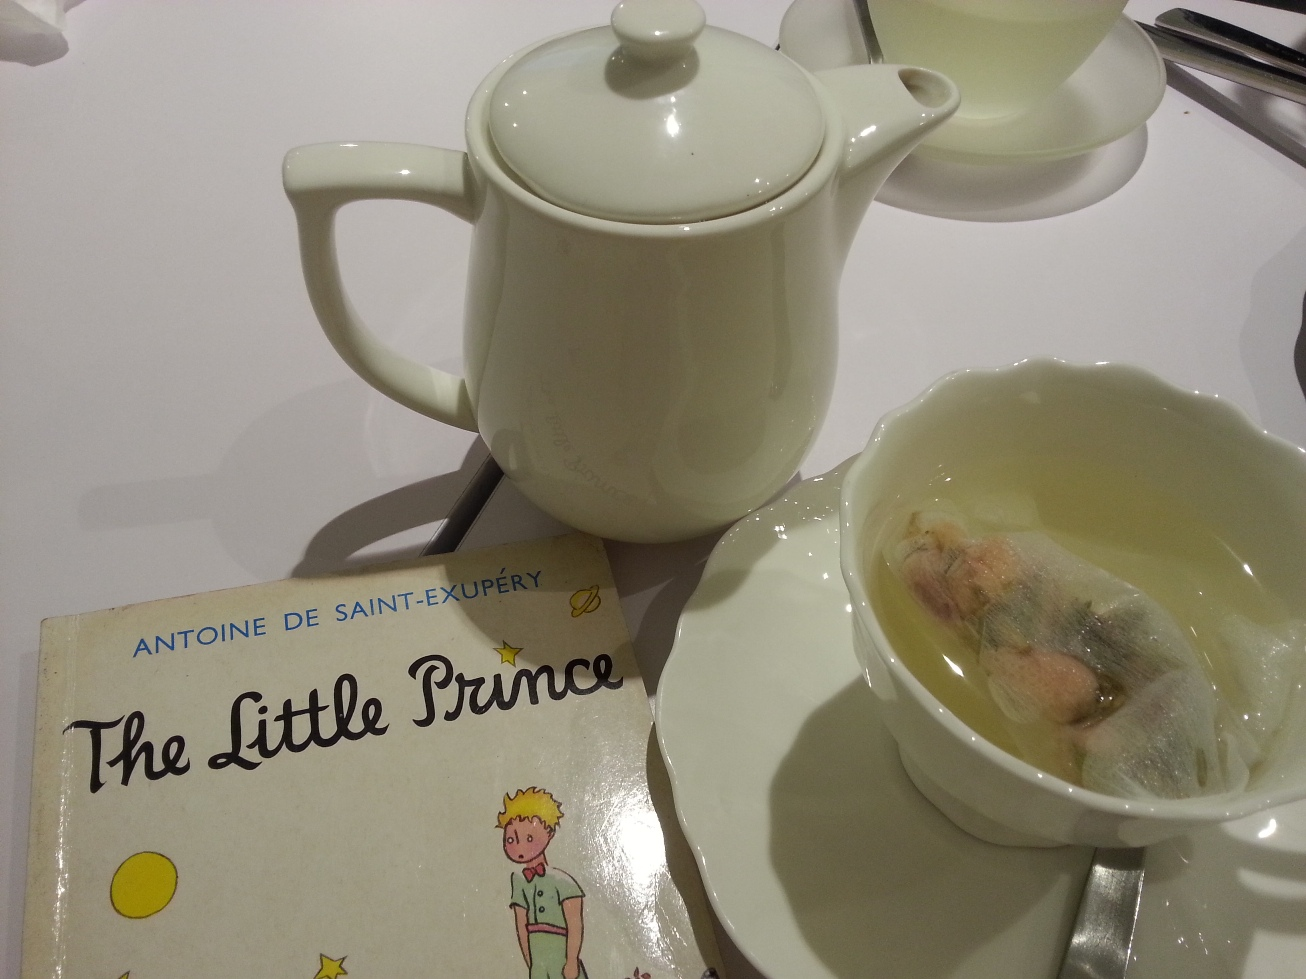 The Little Prince Creamery in Toa Payoh